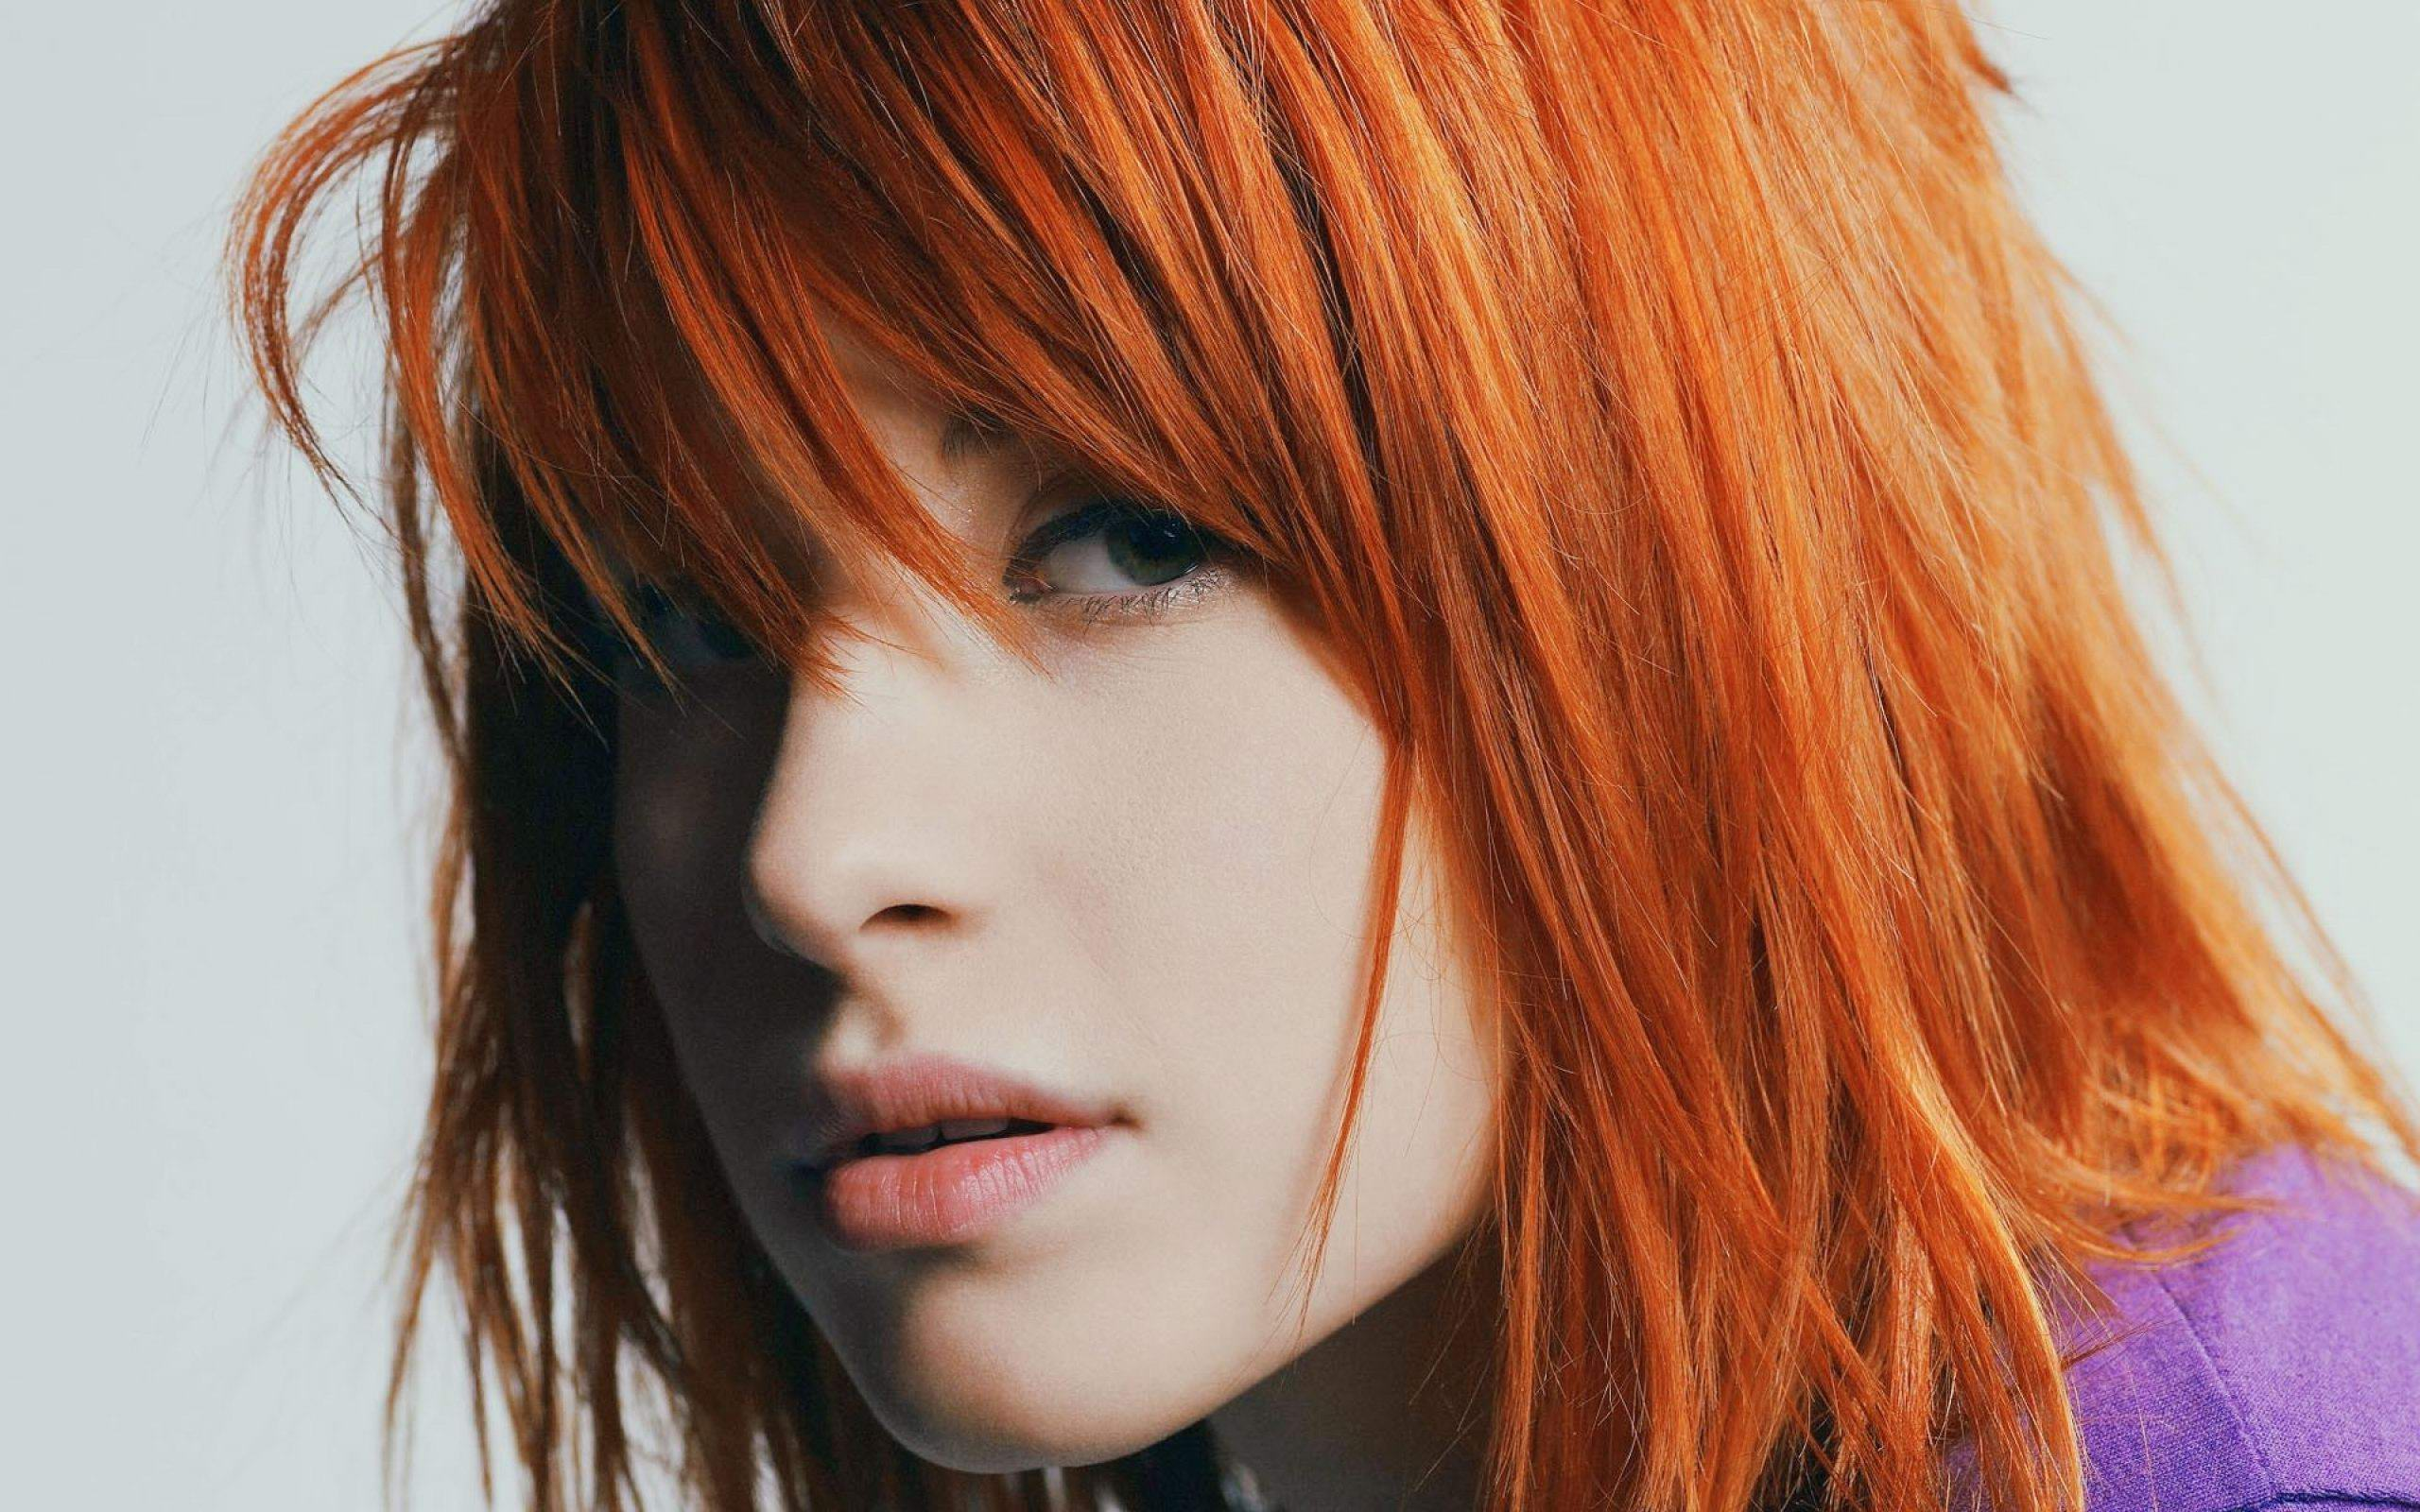 Hayley Williams [RedHair Girl] 2560x1600